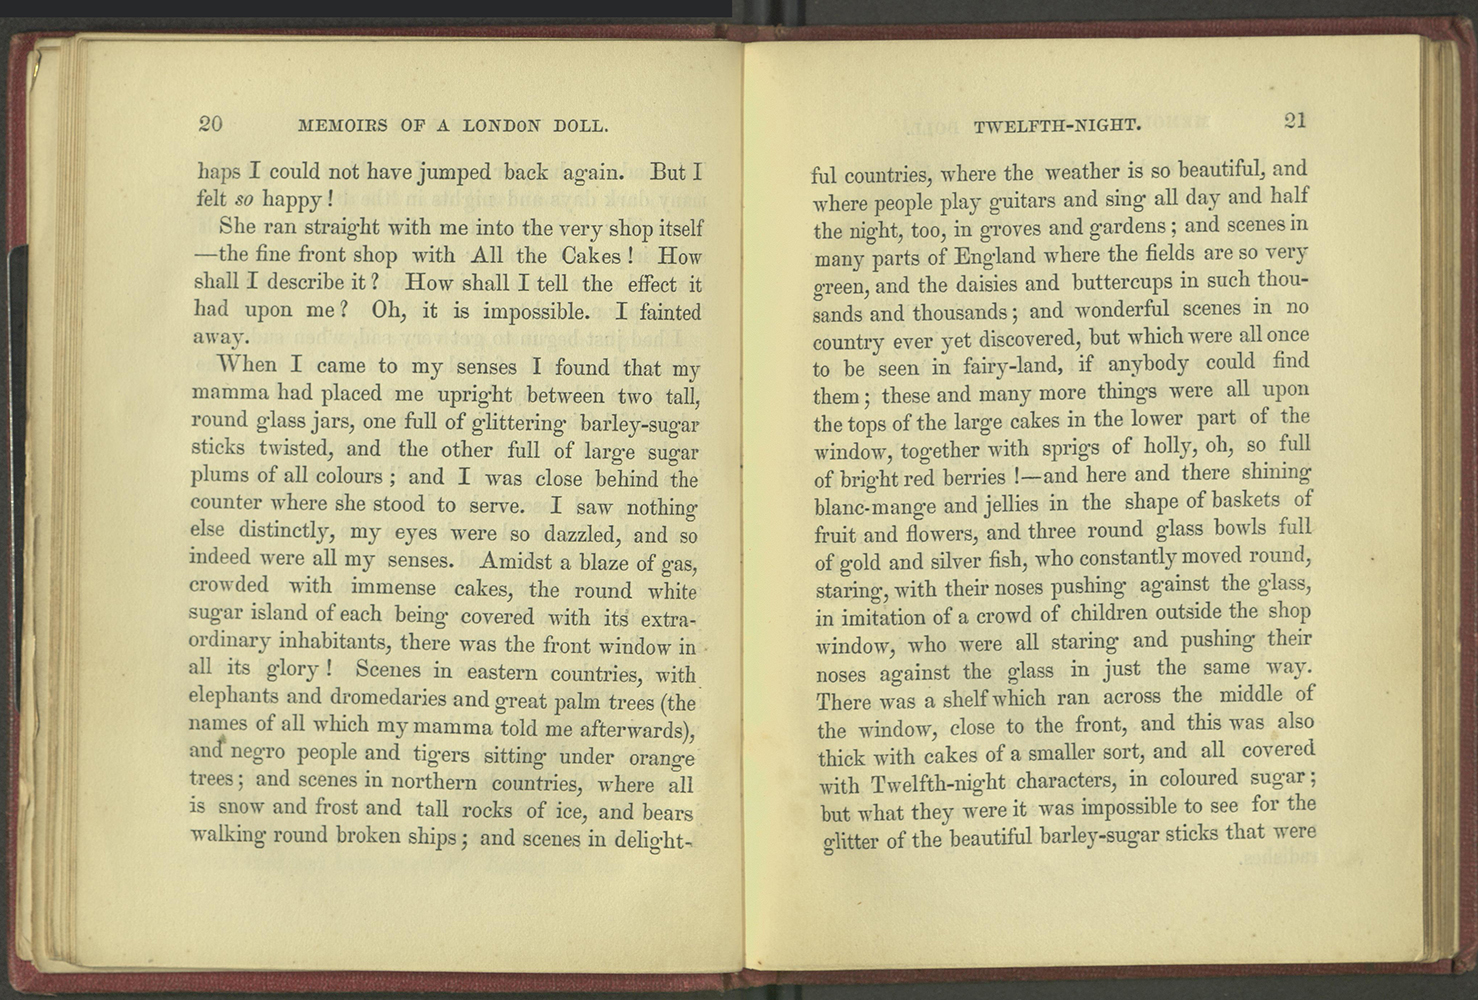 Pages 20-21, describing the pastry shop at Twelfth Night.